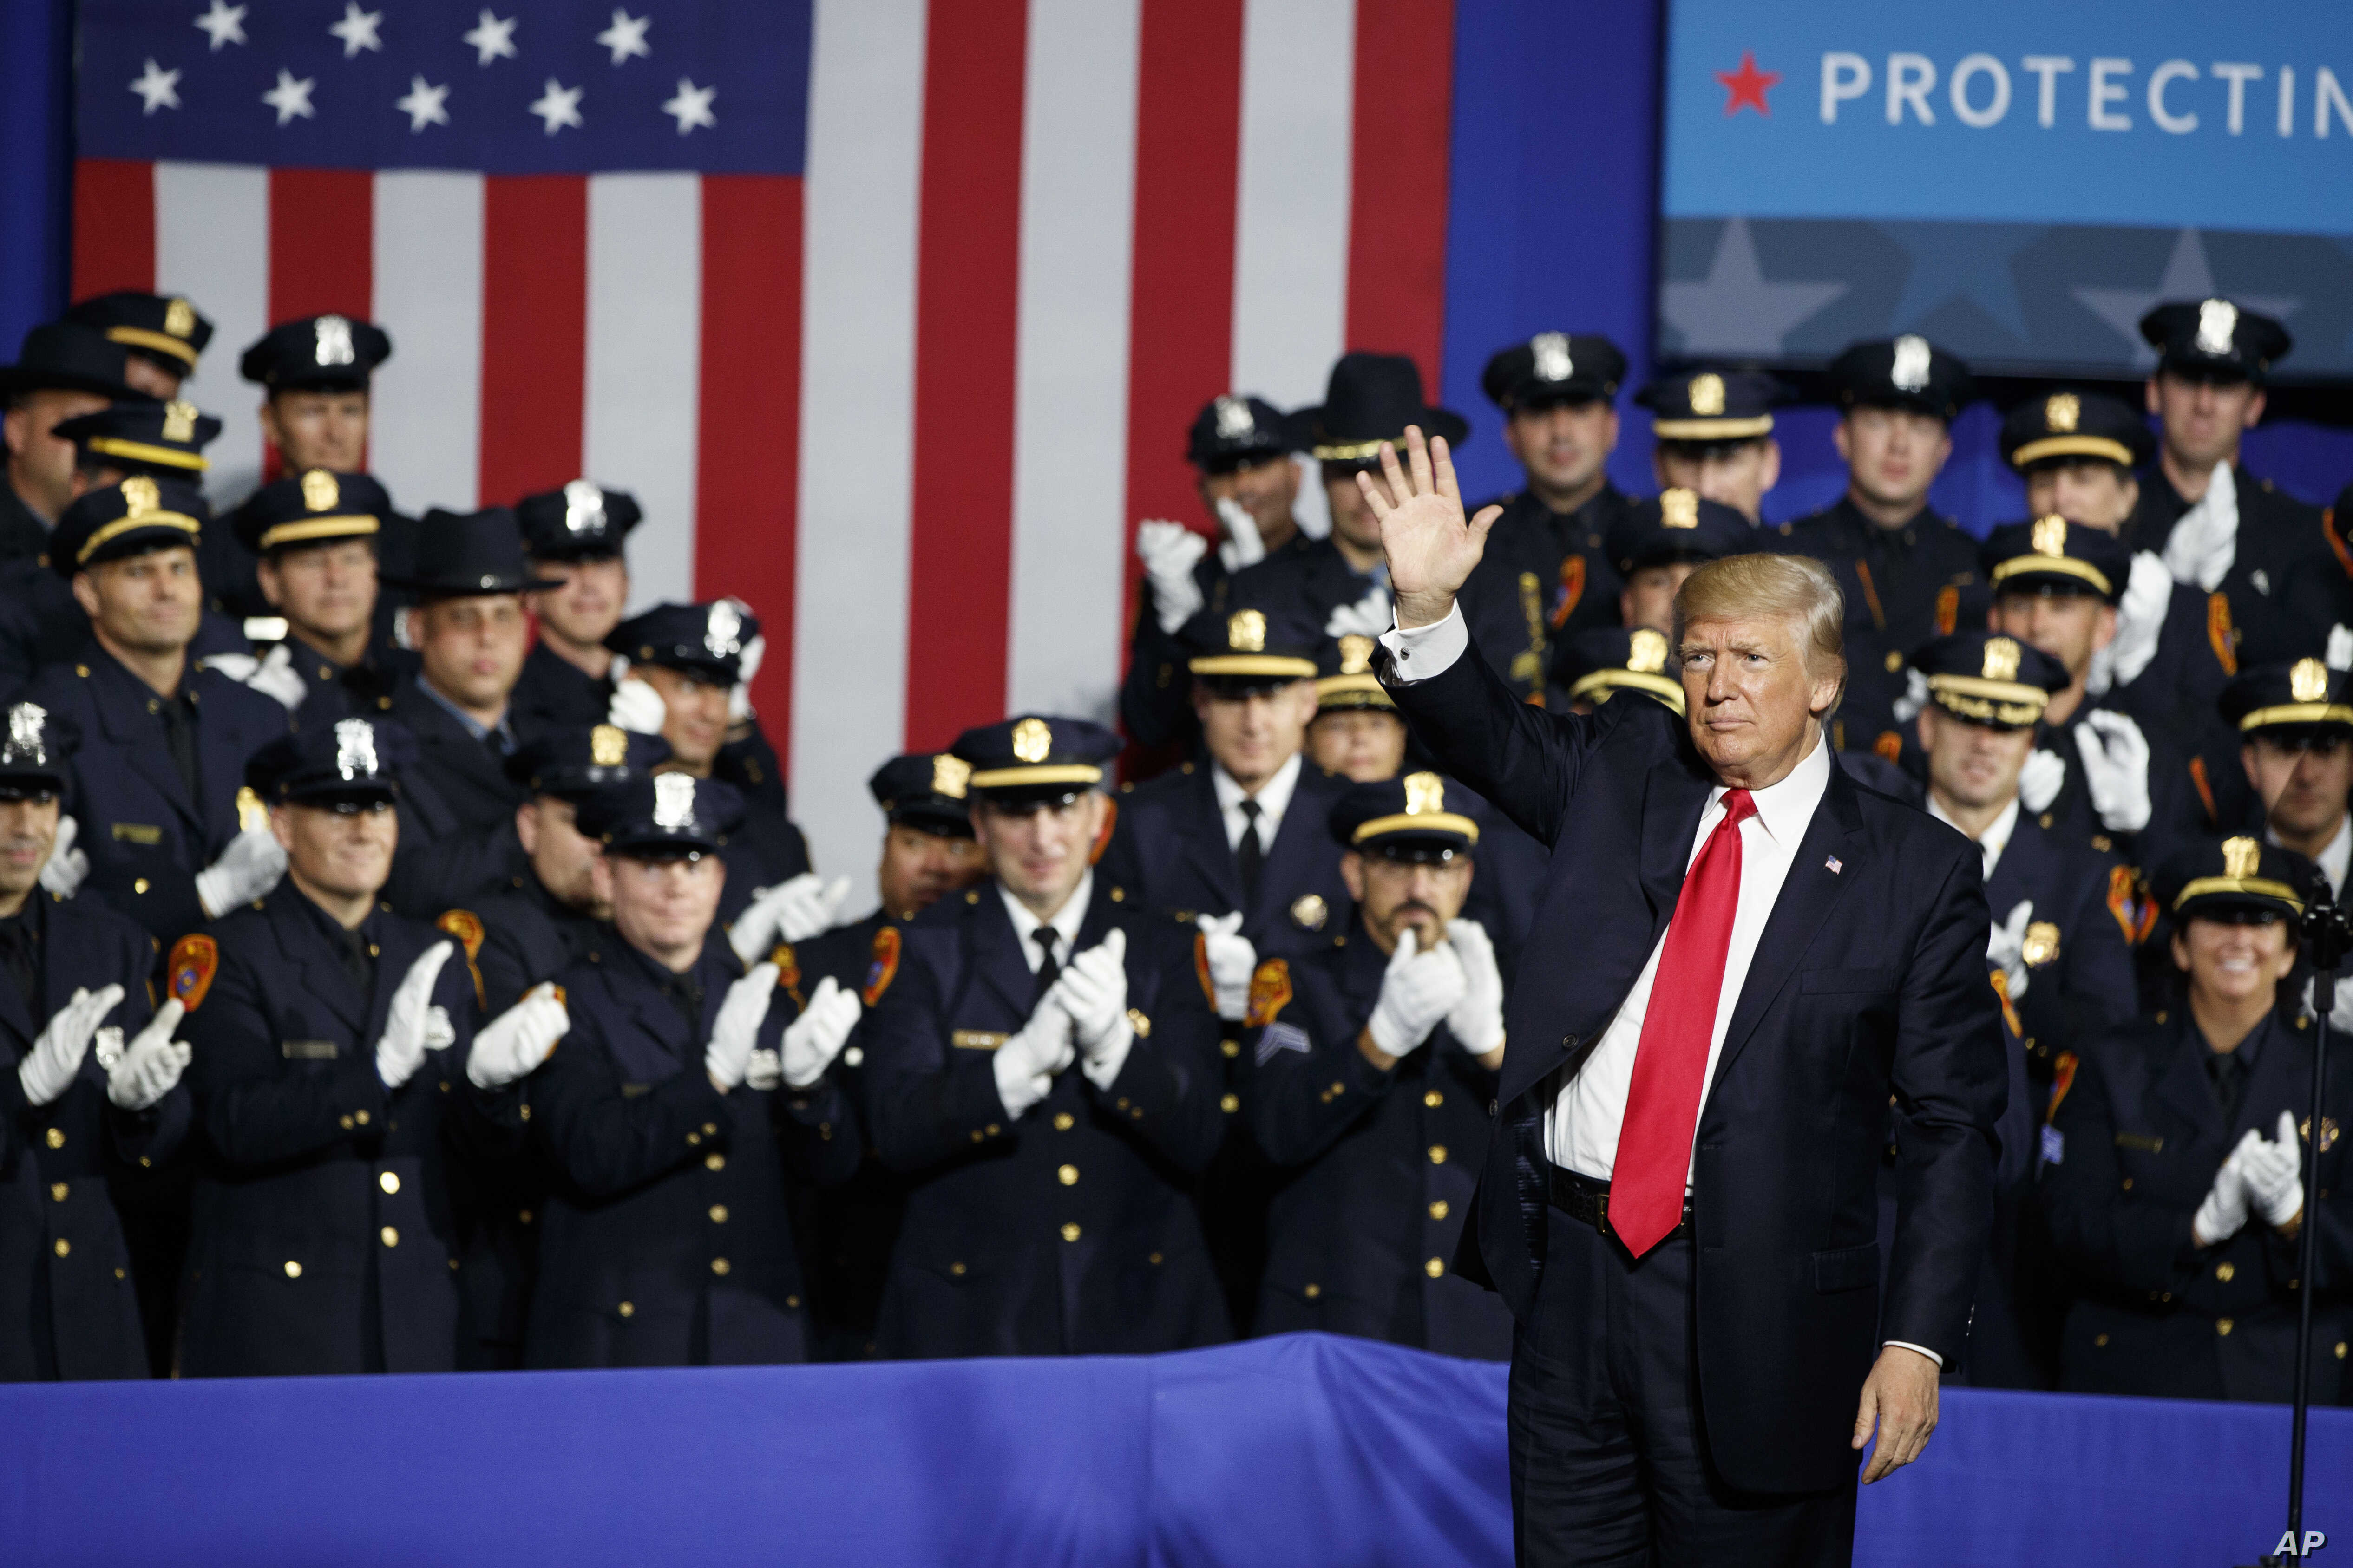 Trump Calls for 10,000 More Immigration Officers to Combat